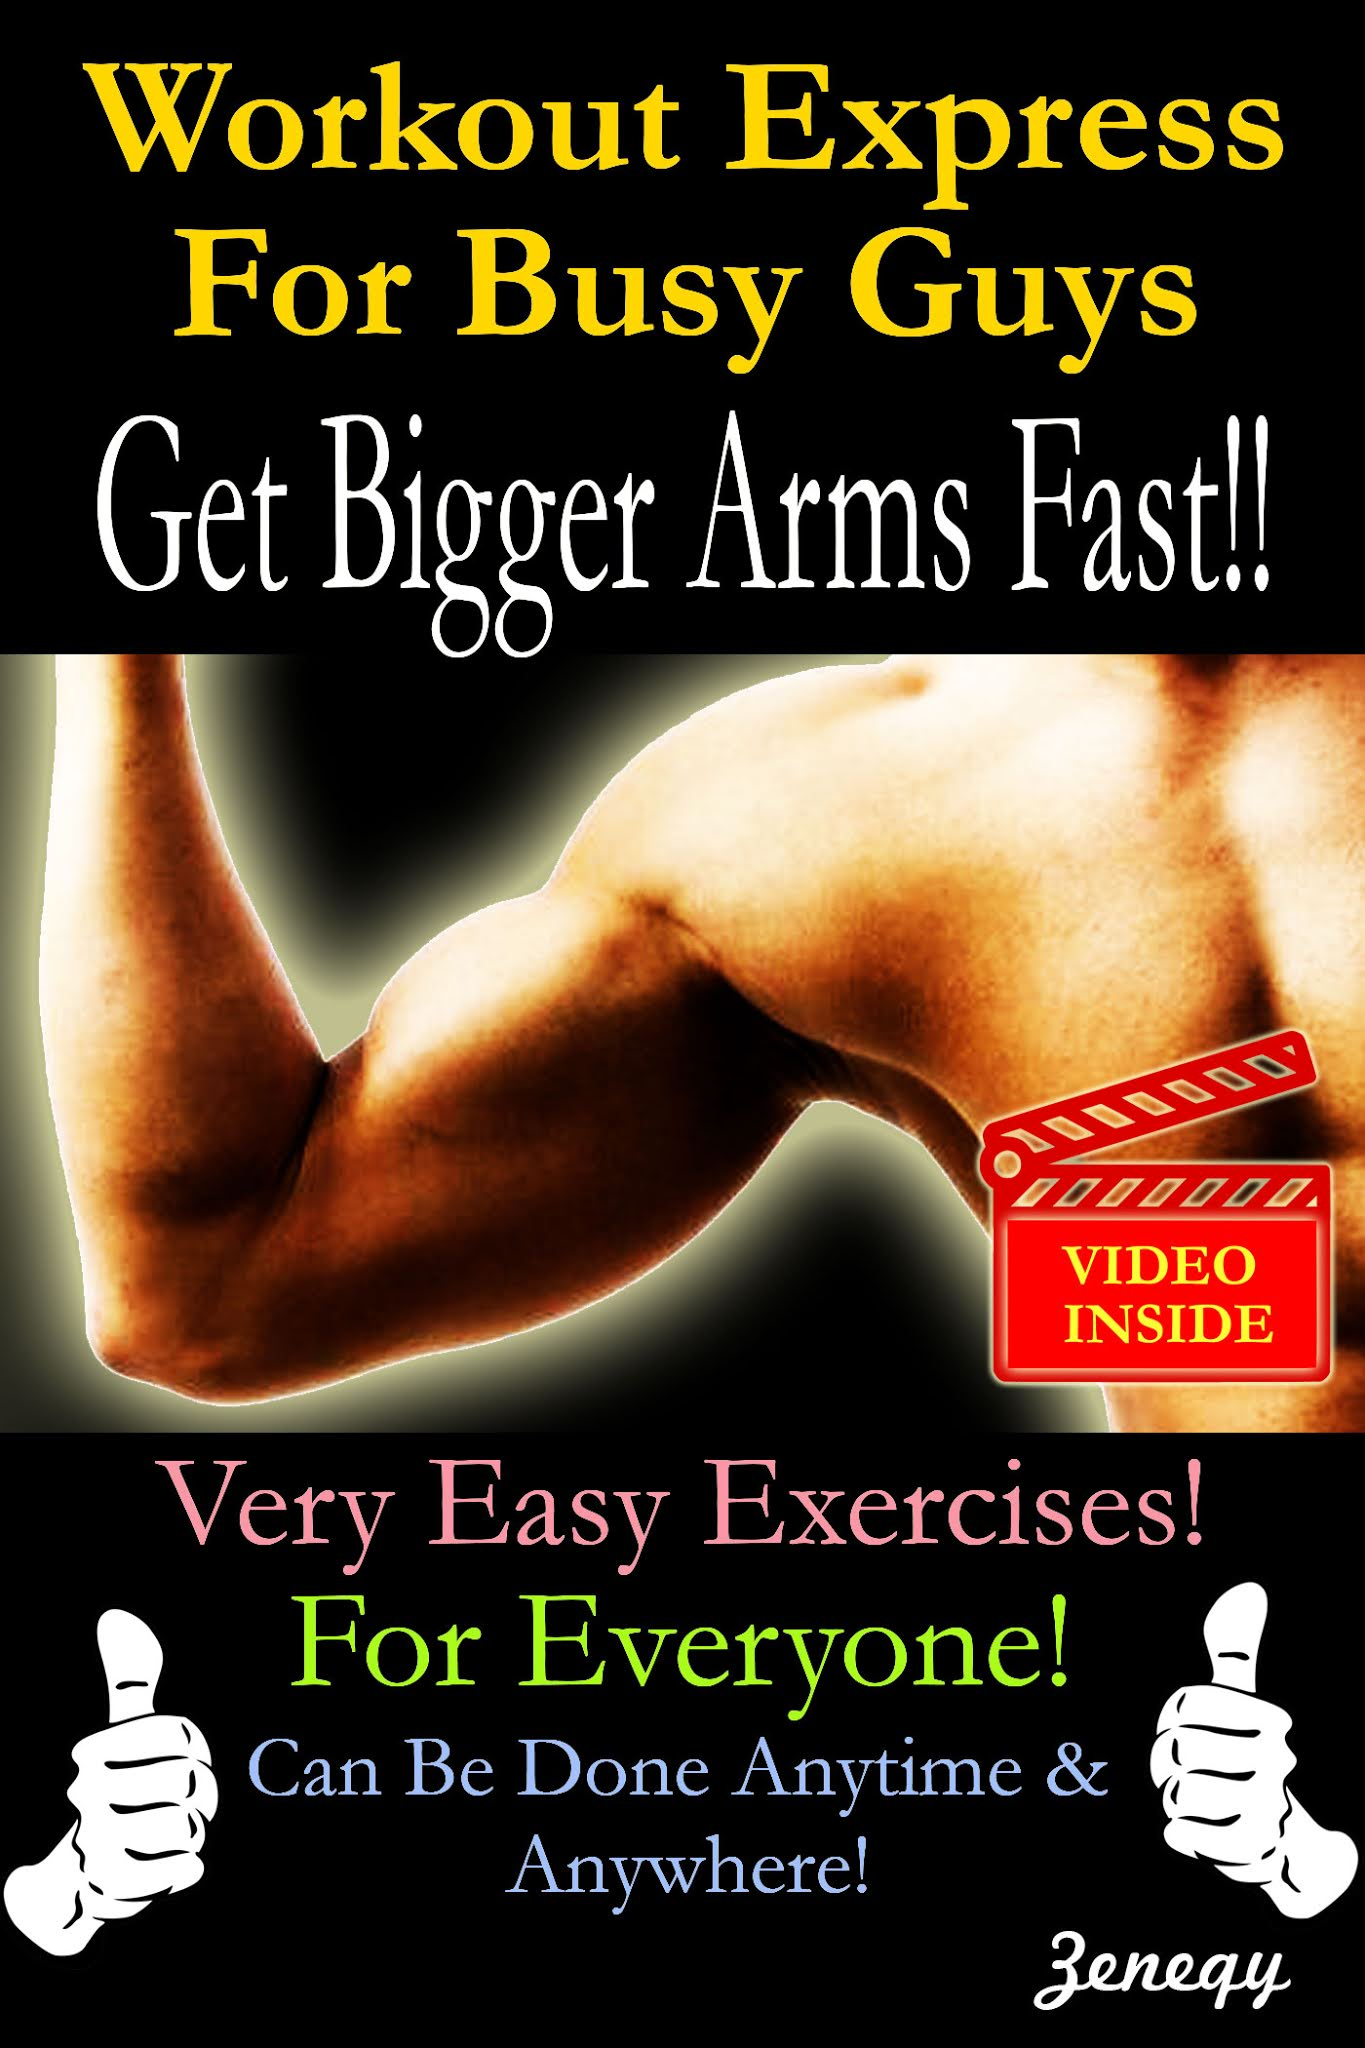 Workout Express For Busy Guys: Get Bigger Arms Fast!!